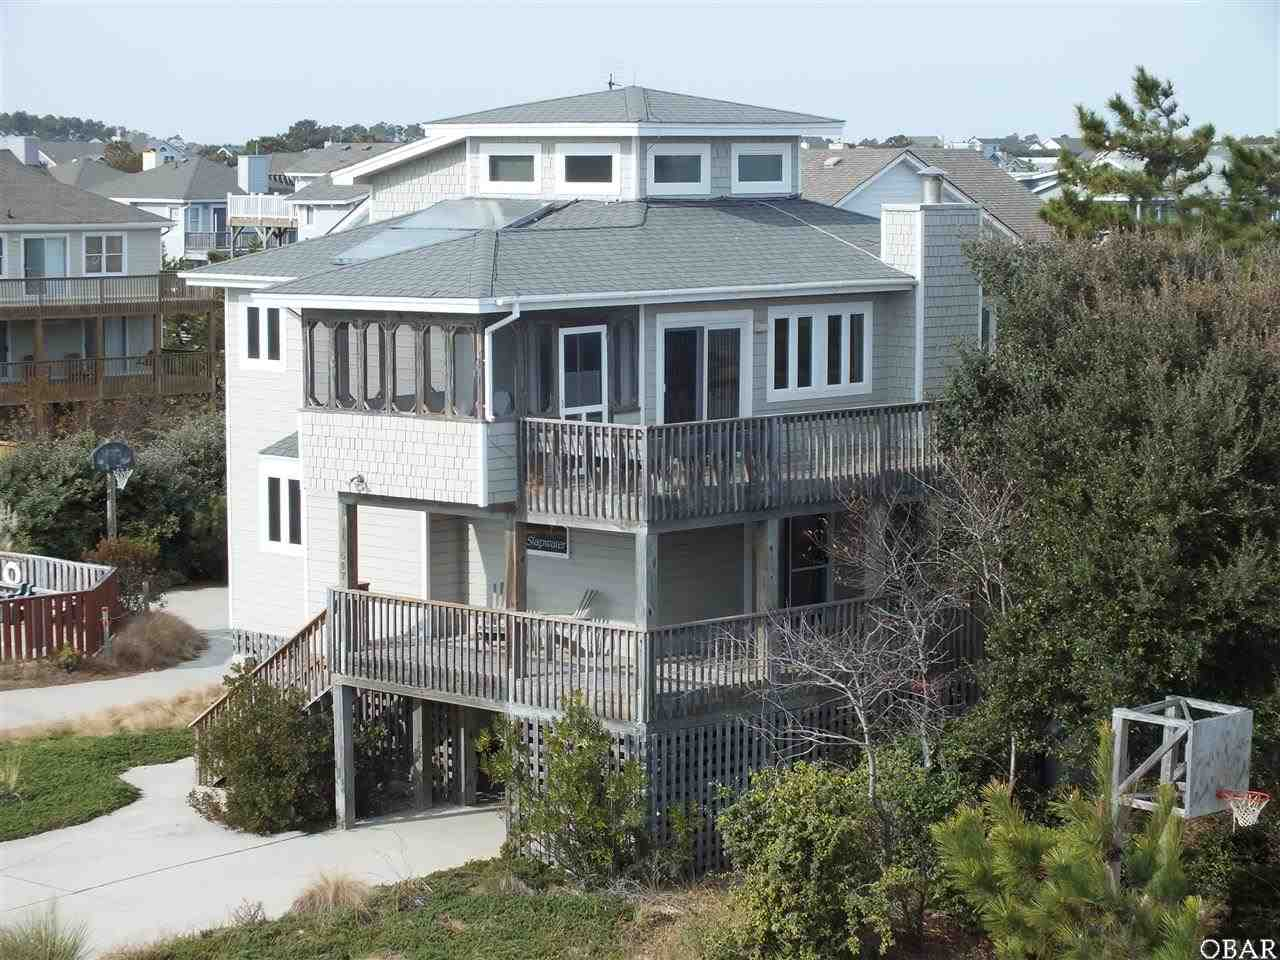 617 Tern Arch,Corolla,NC 27927,5 Bedrooms Bedrooms,3 BathroomsBathrooms,Residential,Tern Arch,84496